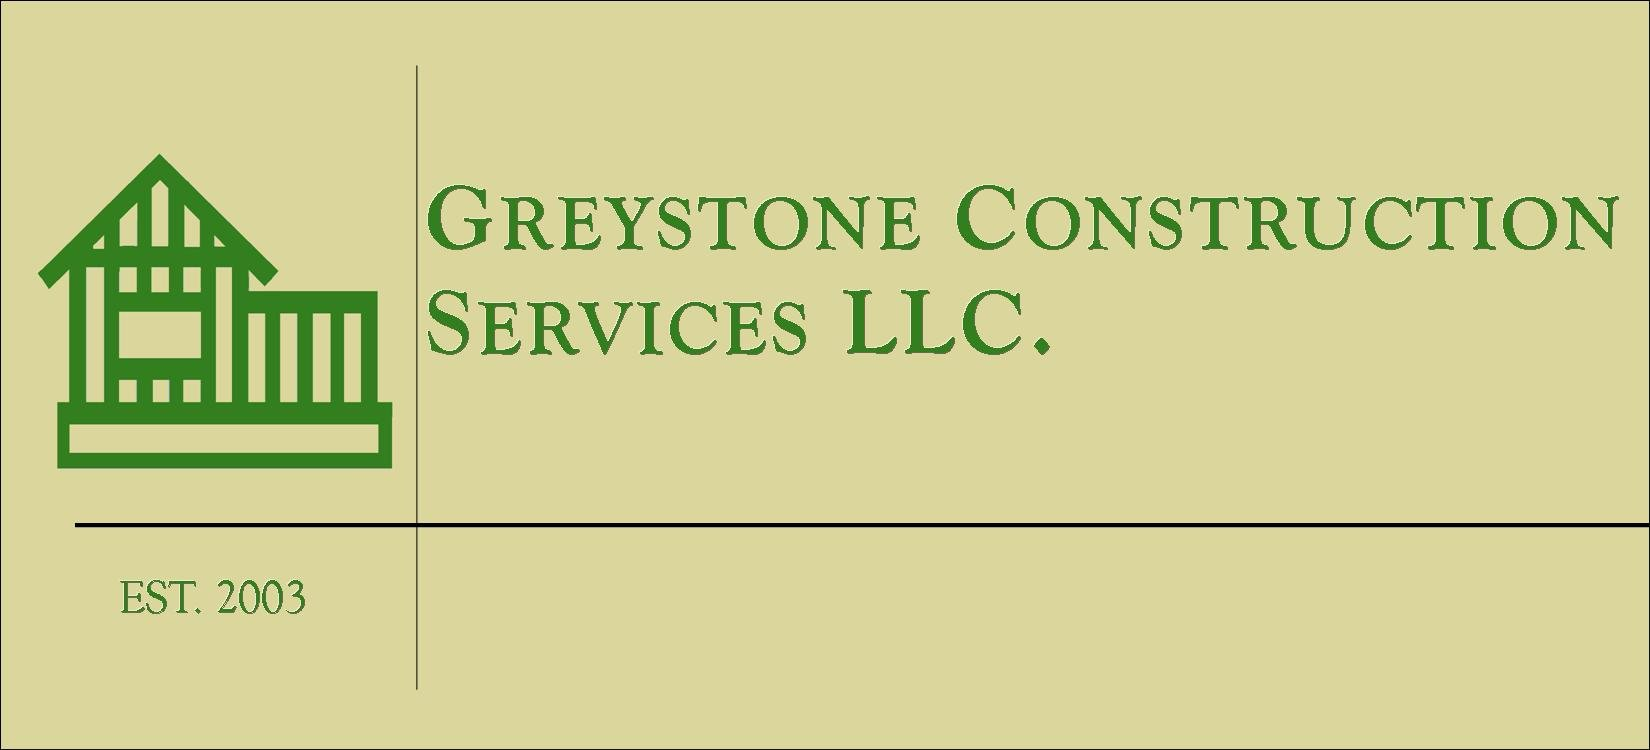 Greystone Construction Services LLC